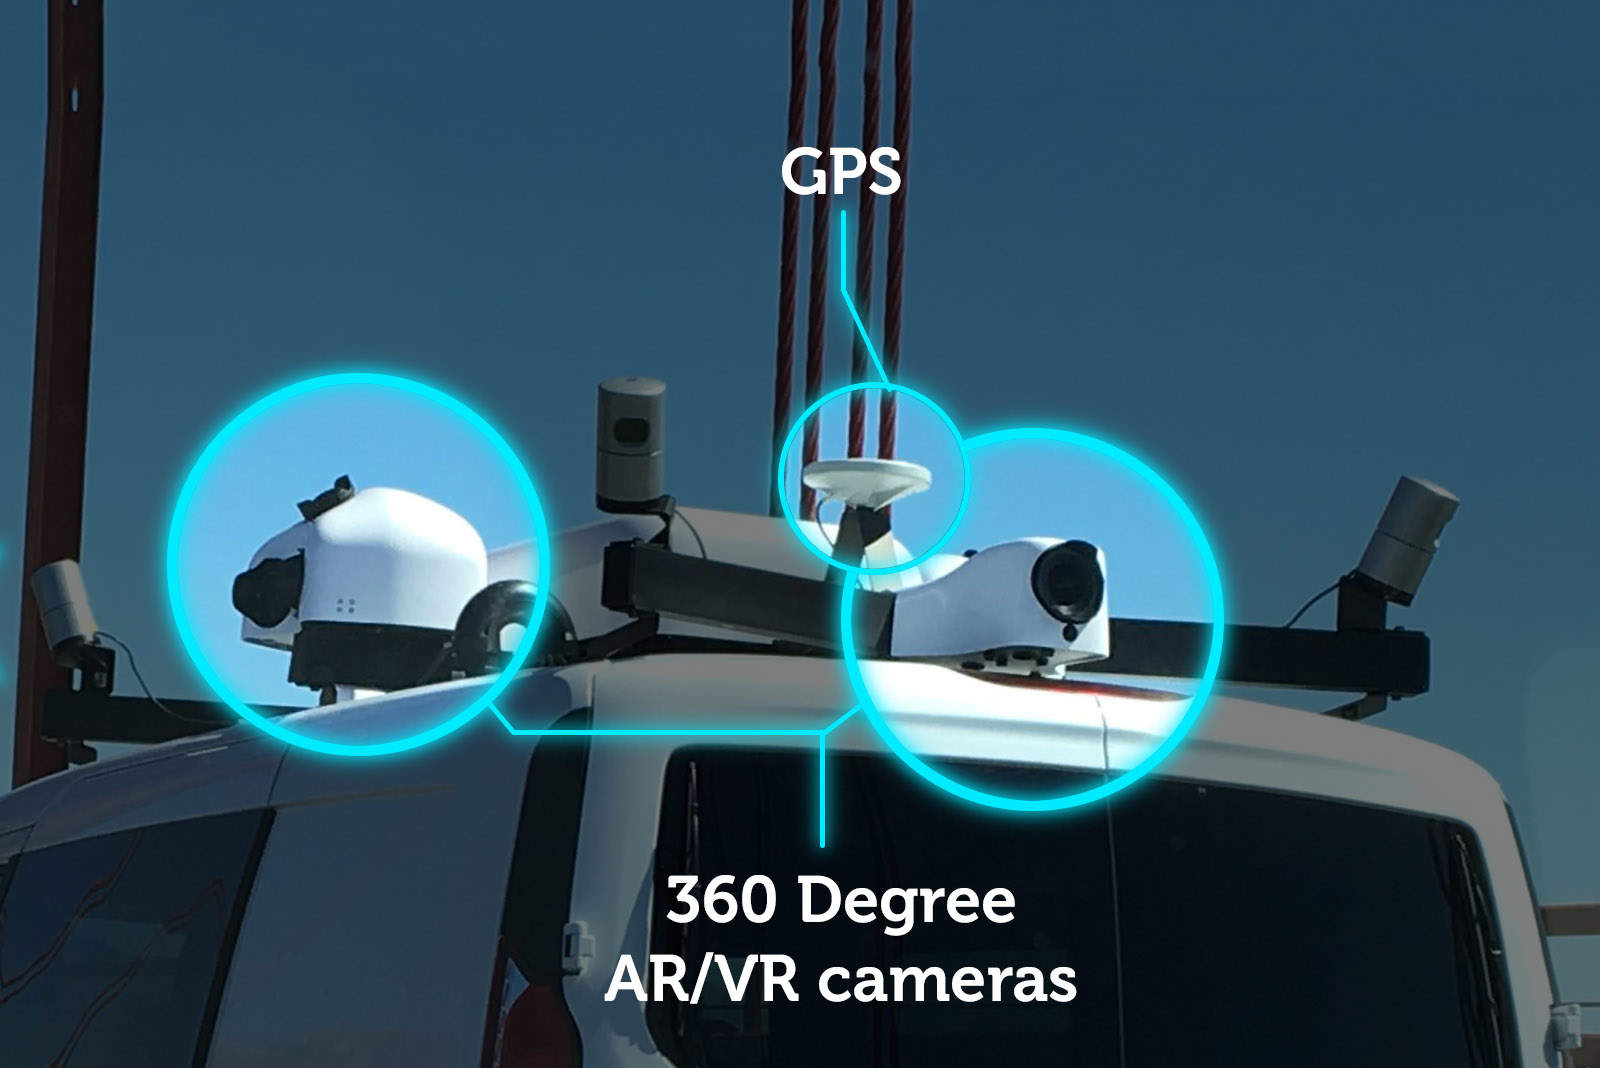 The array of cameras are capturing a 360-degree, hemispherical view of the road. Like virtual reality, the viewer will be able to look all around them and even upwards.